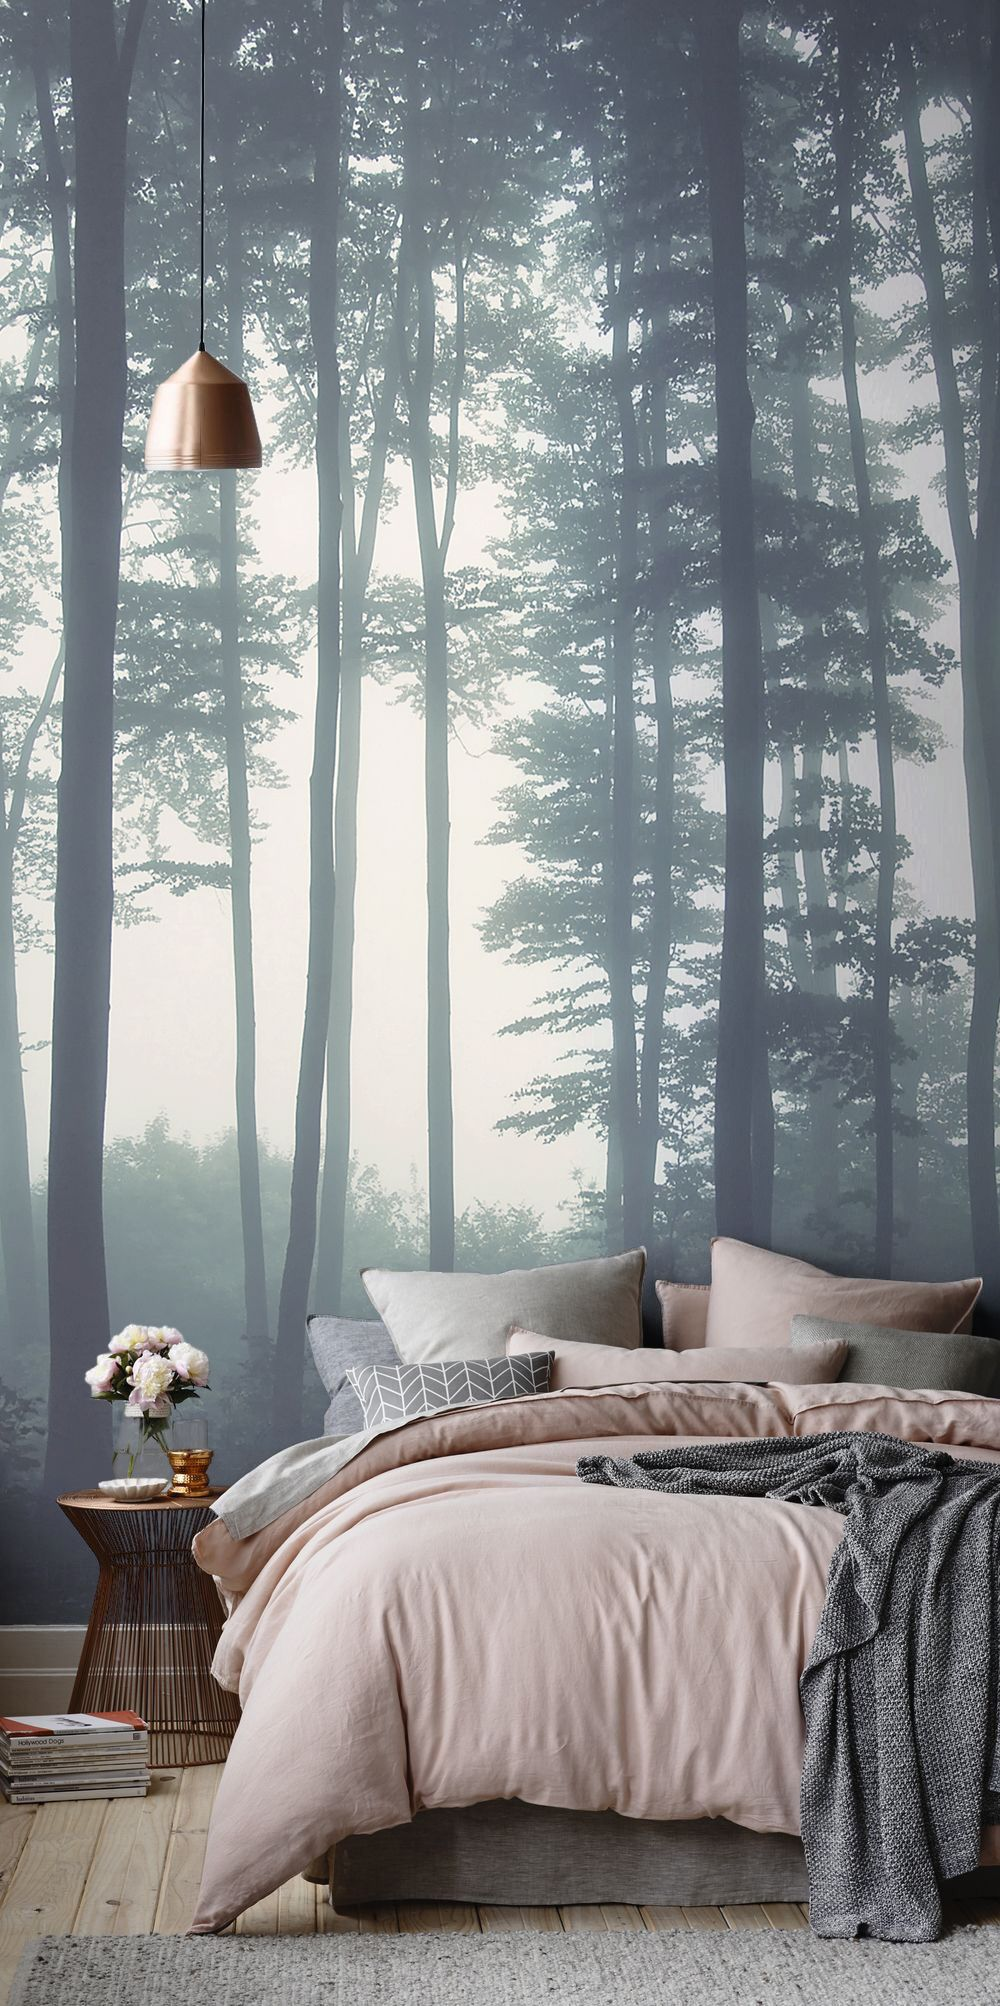 wallpaper wallpaper murals bedroom wallpaper cool wallpaper bedroom